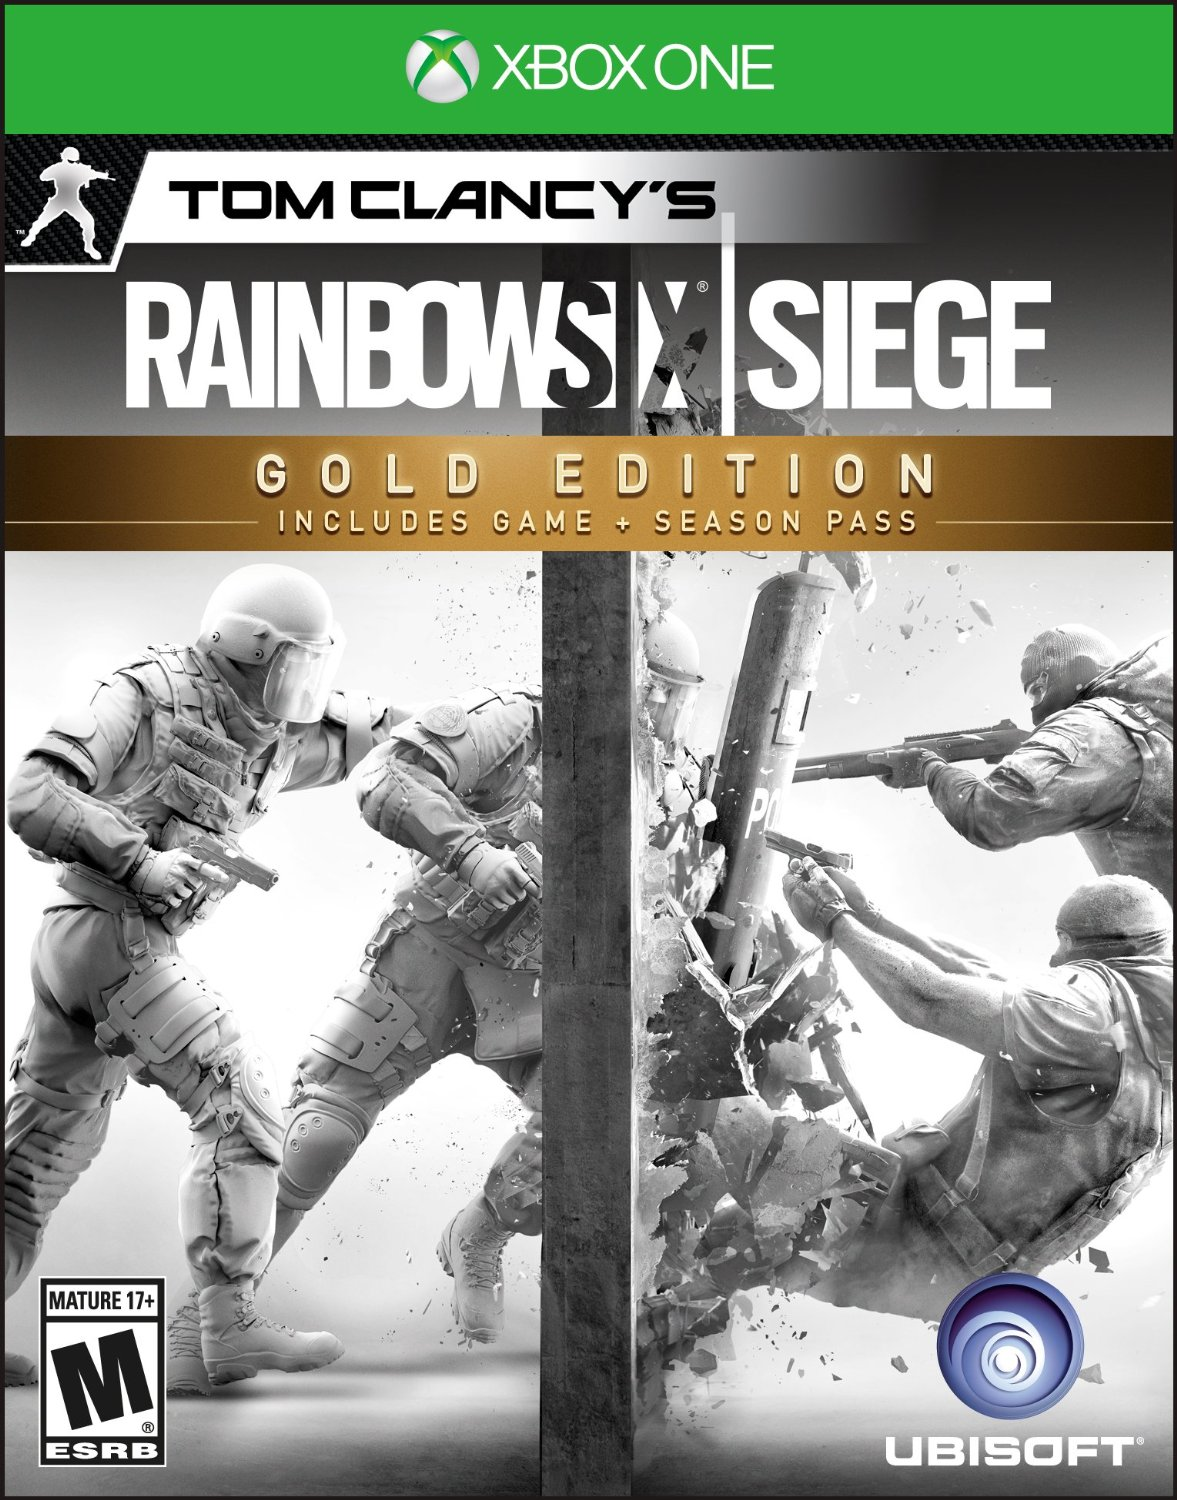 Tom Clancy's Rainbow Six Siege Gold Edition for XBOX ONE